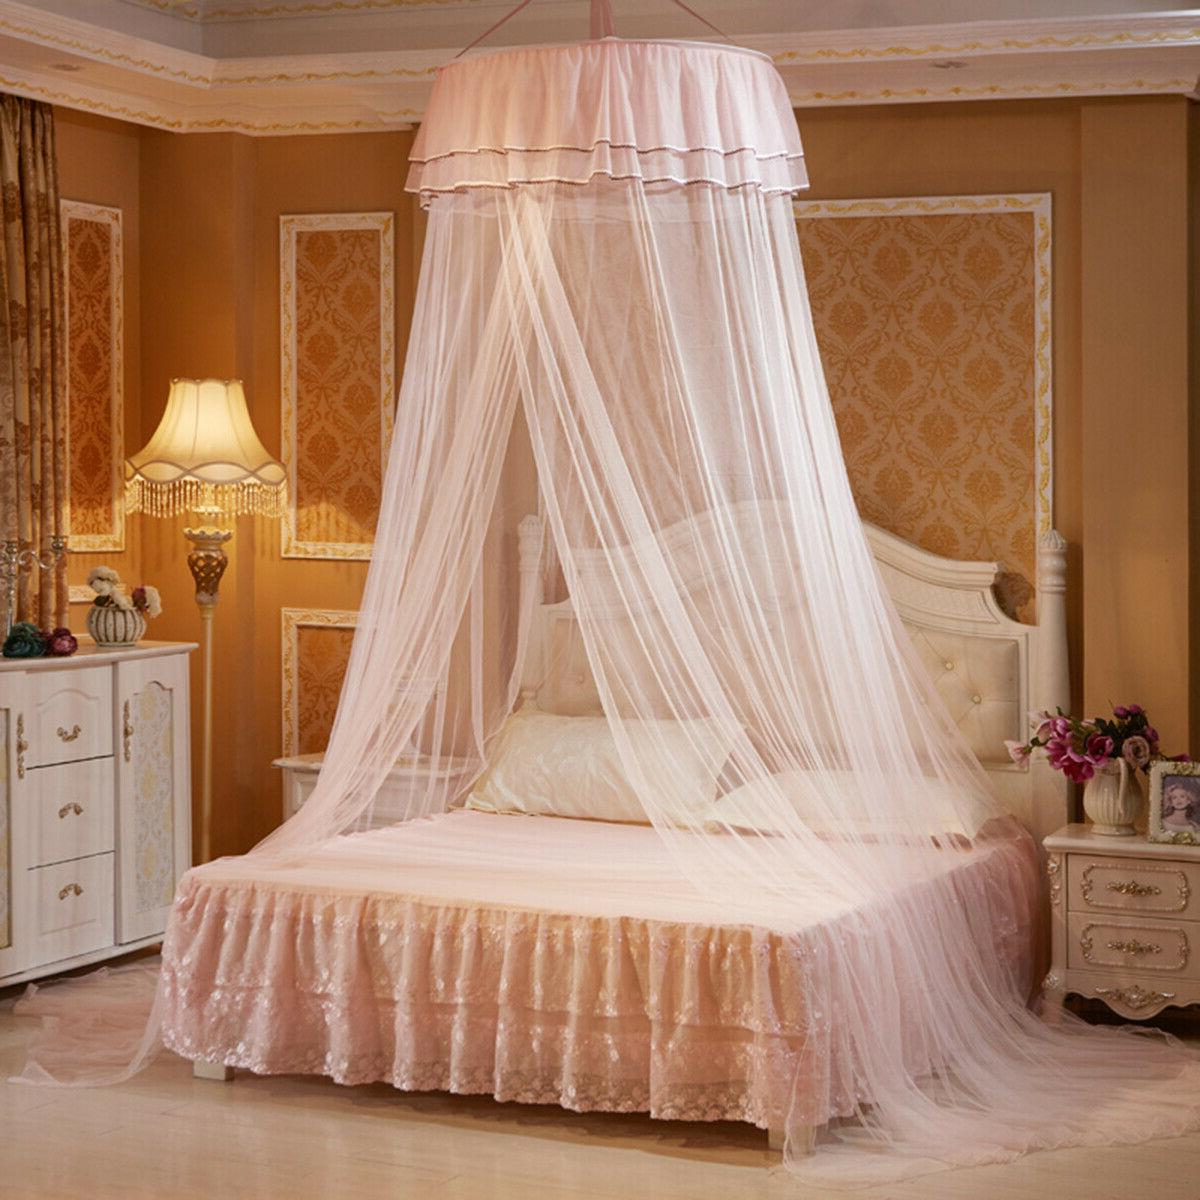 Solid Mosquito Net Queen Size Dome Foldable Bed Princess